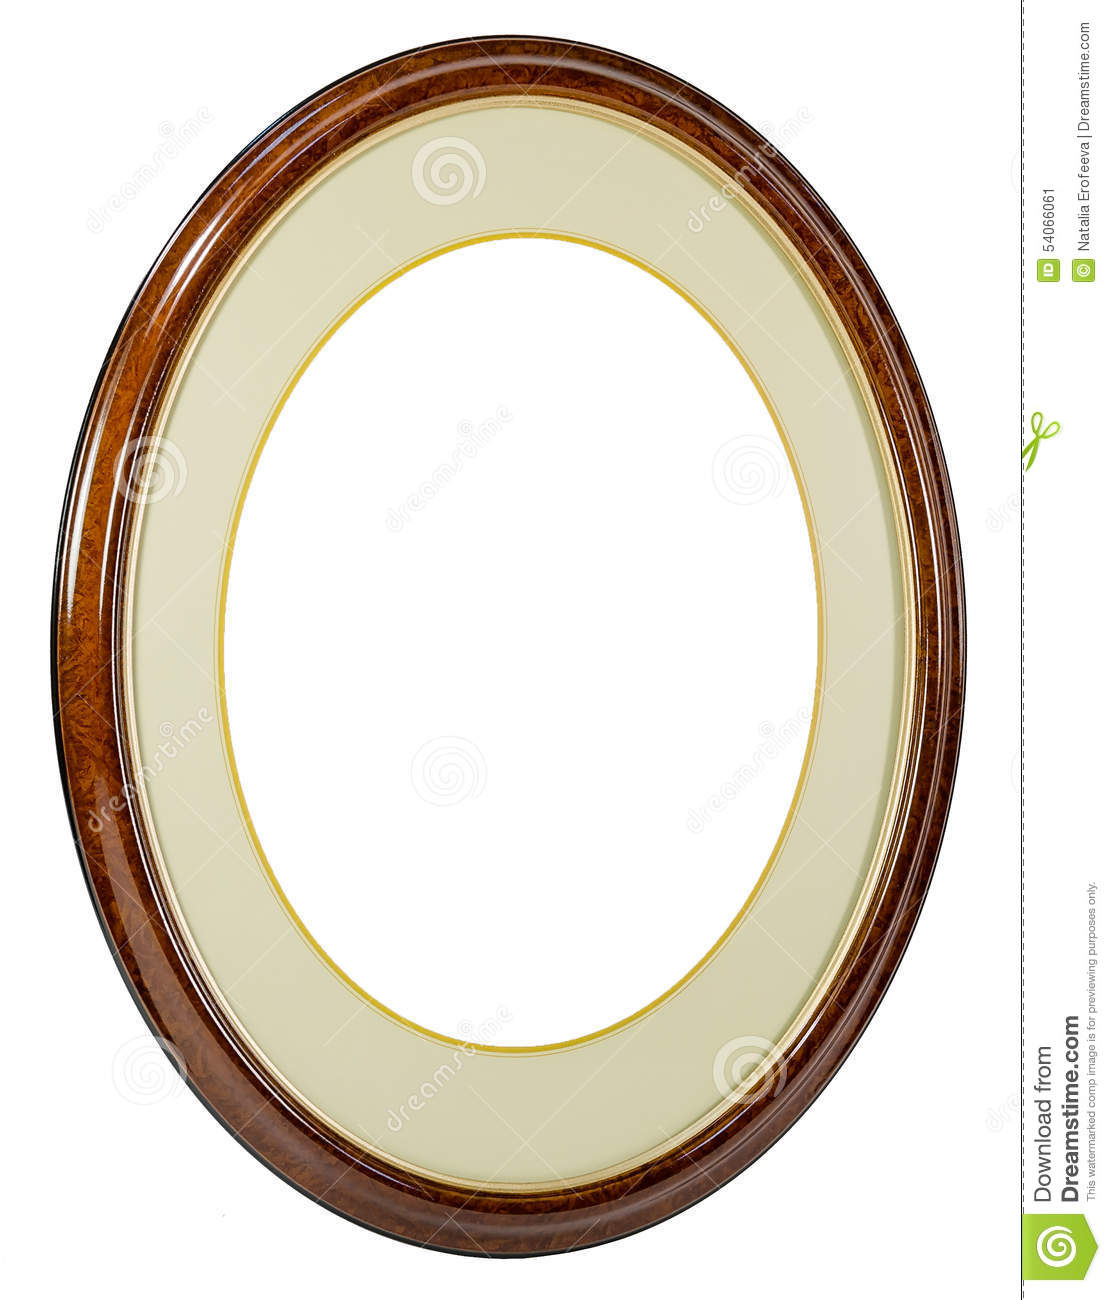 Wooden Oval Frame Isolated Background Stock Photo - Image: 54066061